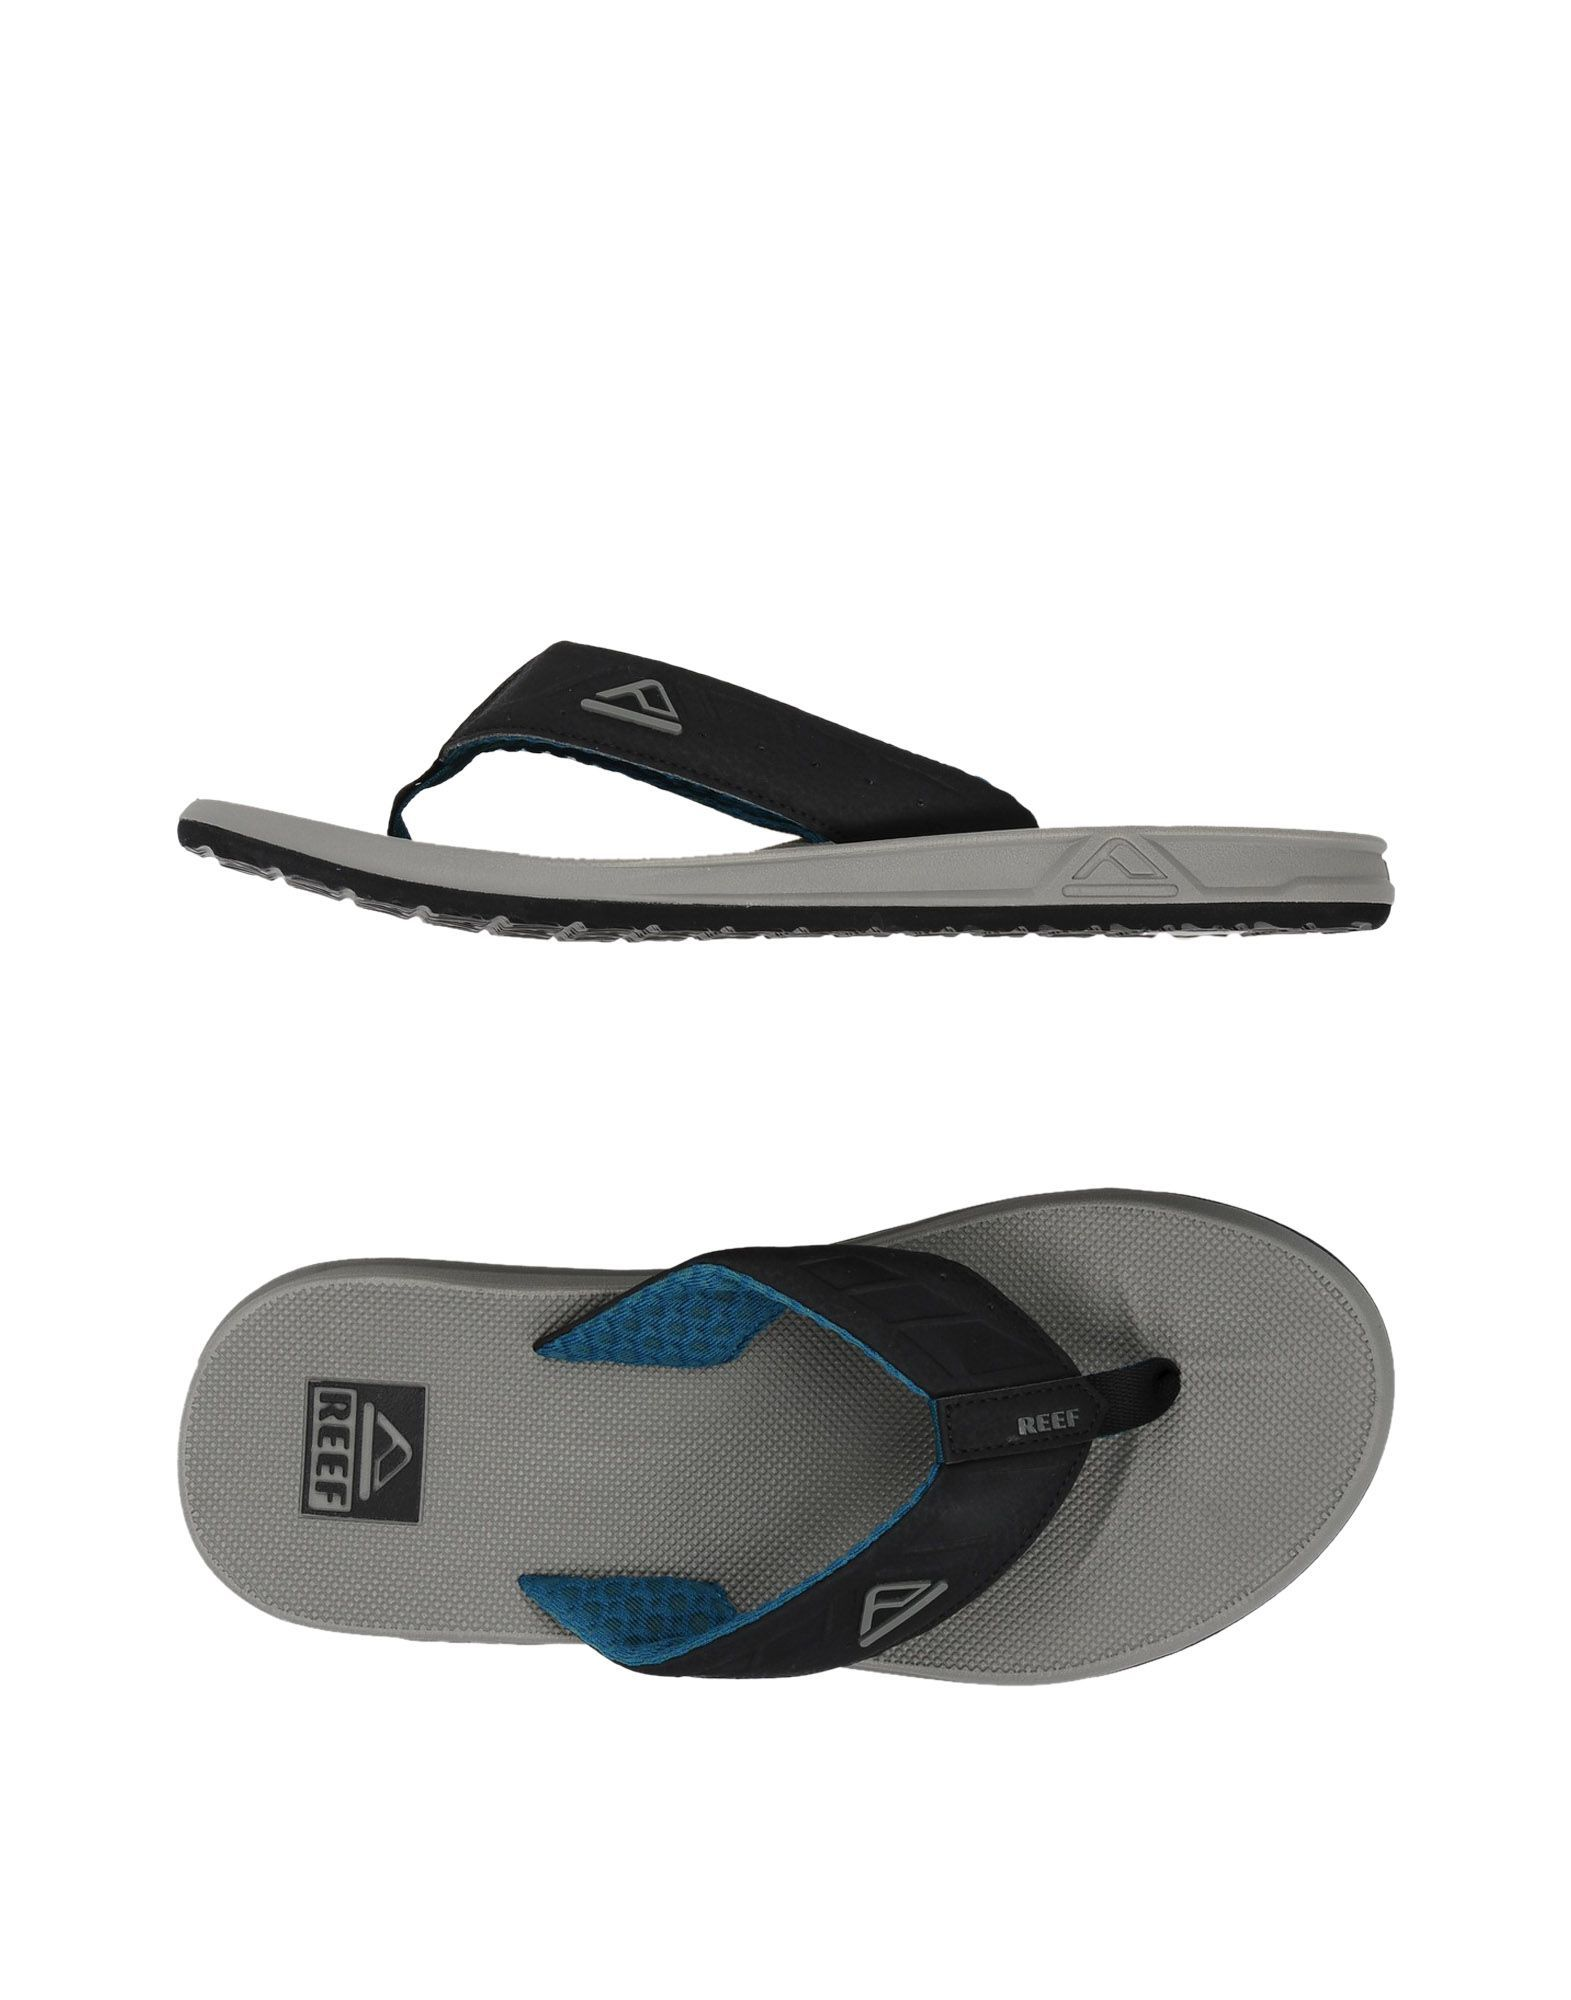 e10074b761f REEF TOE STRAP SANDALS.  reef  shoes